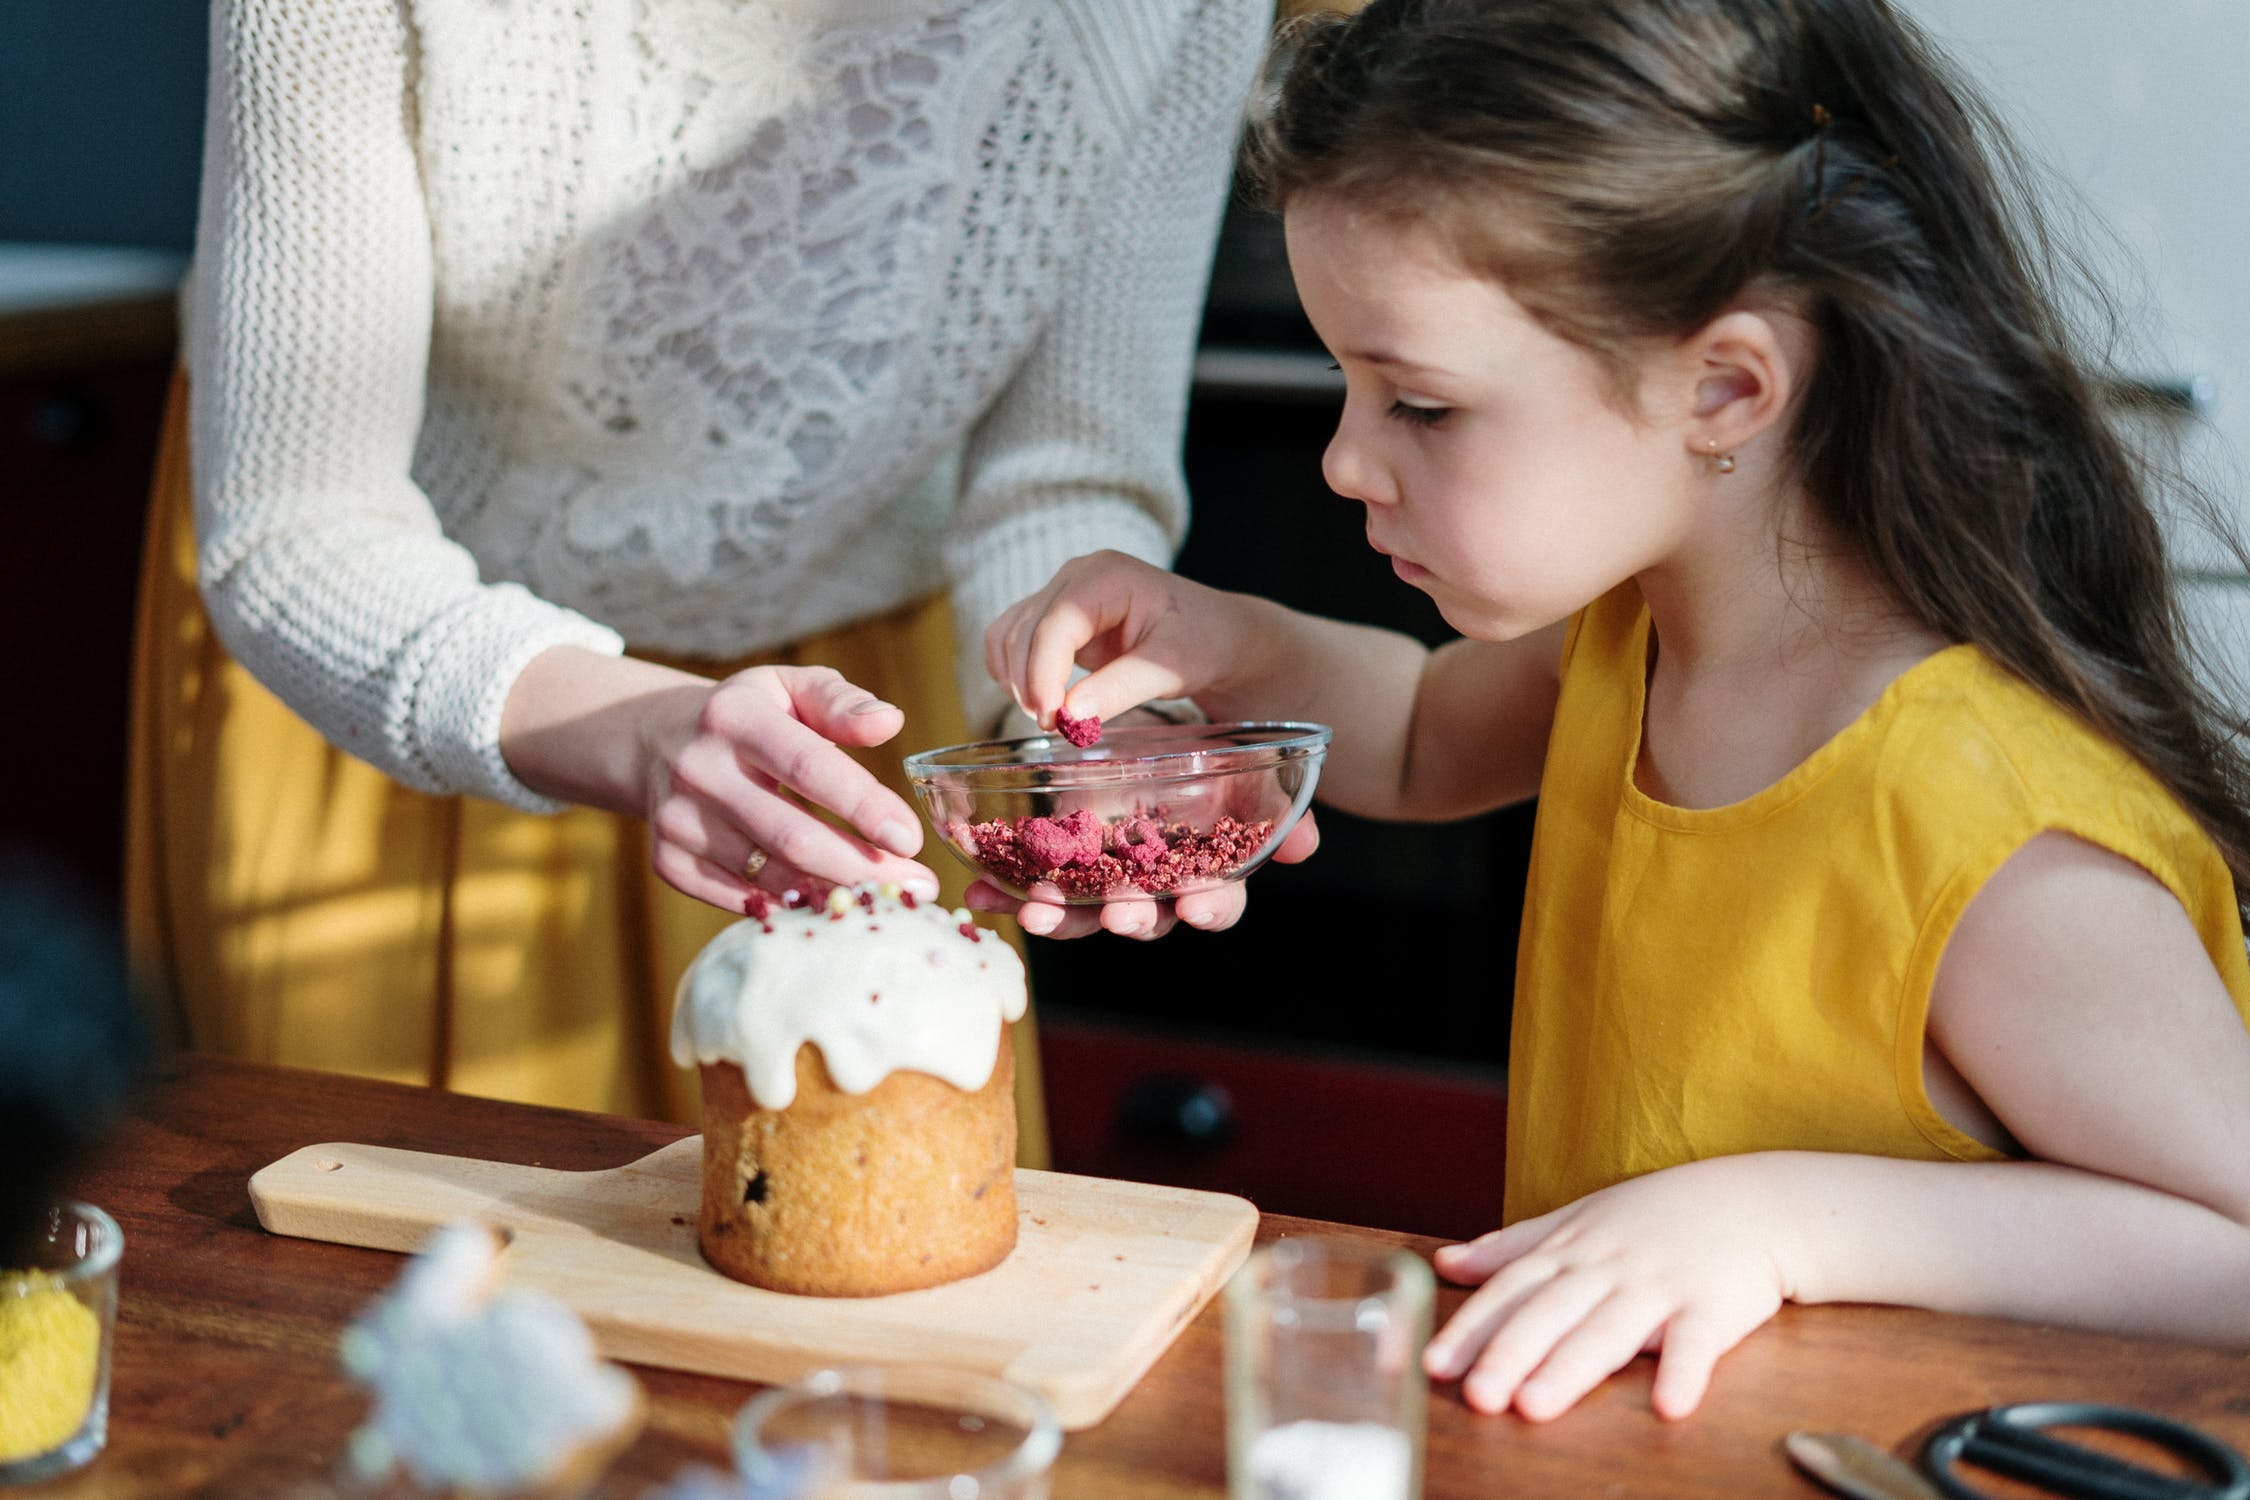 Have fun at home by making delicious Cupcakes!